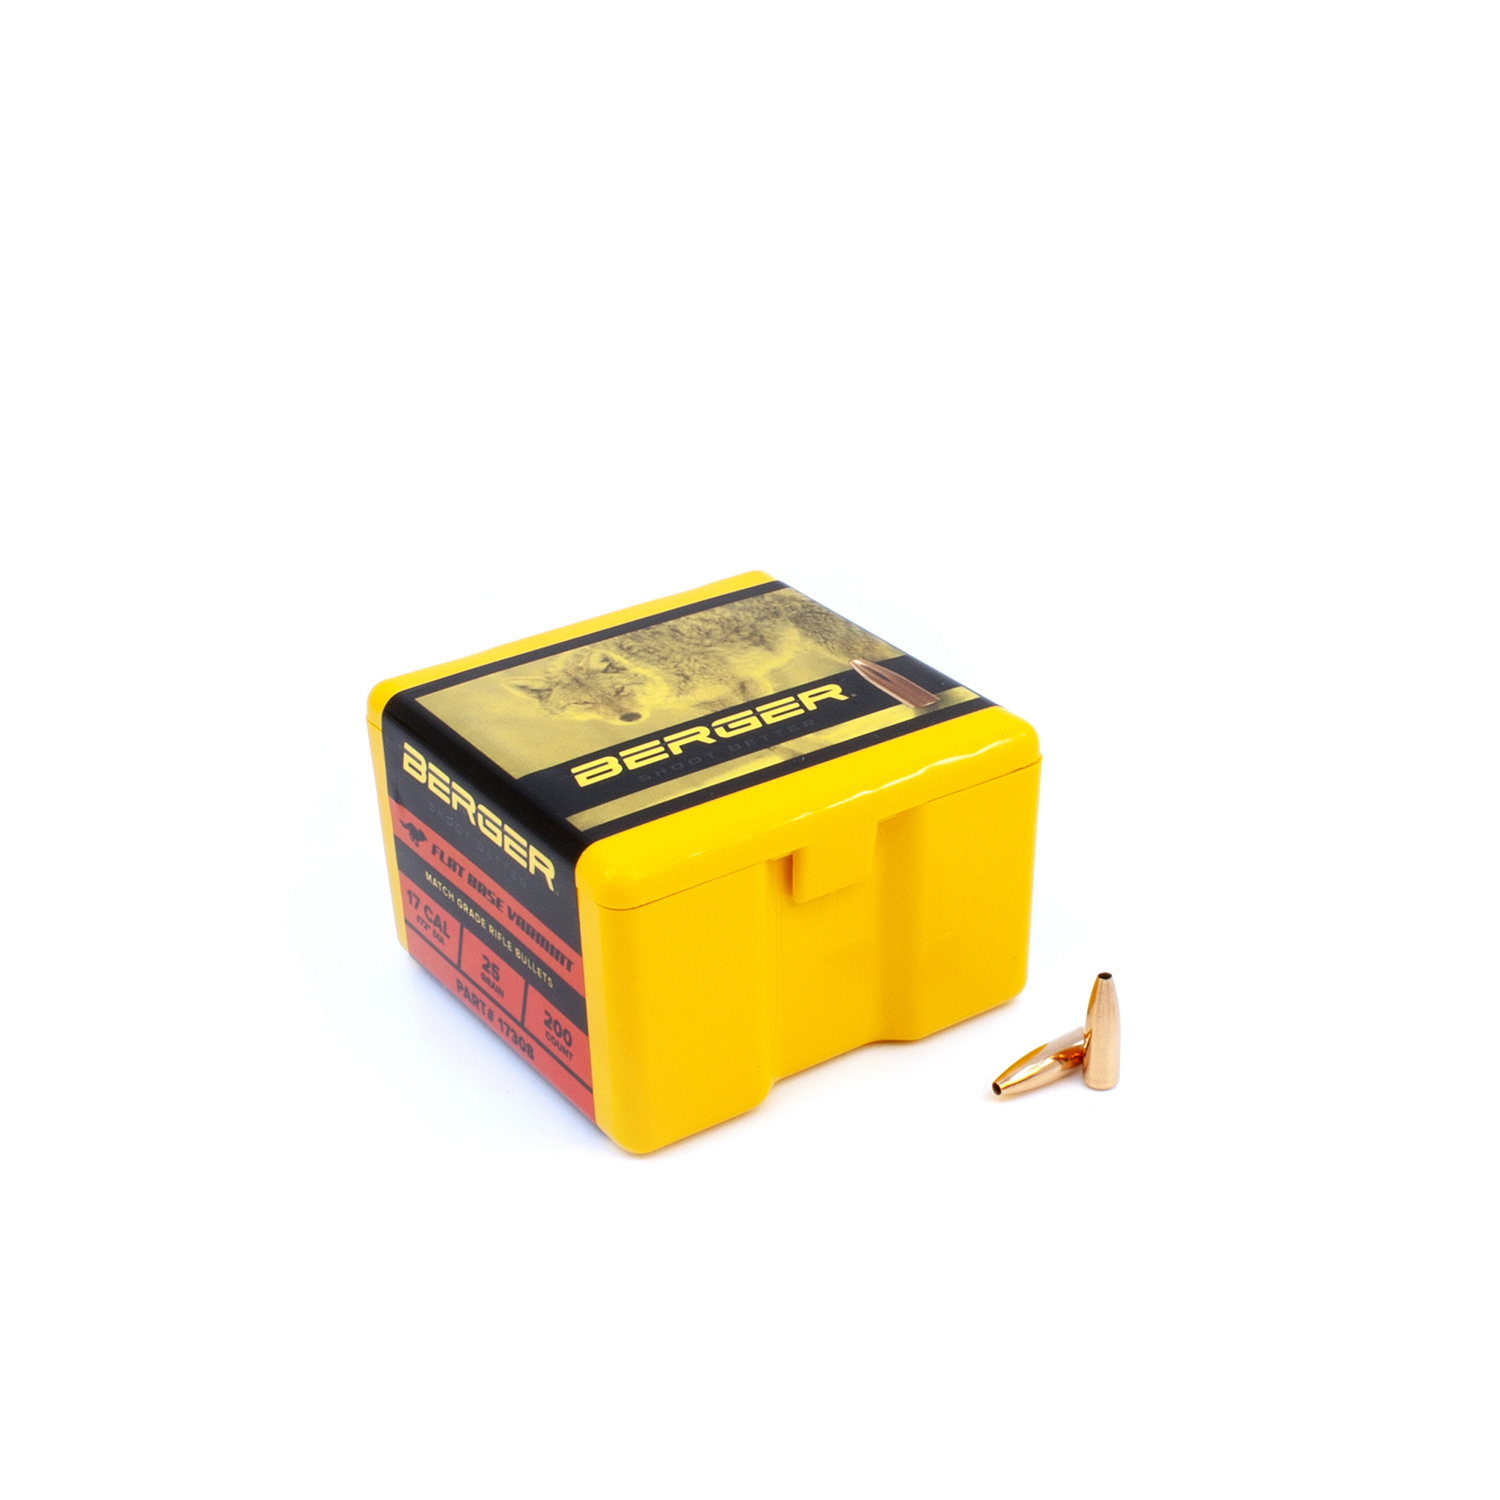 Berger Bullets - .17 cal, 25 gr. Varmint Flat Base - Box of 200